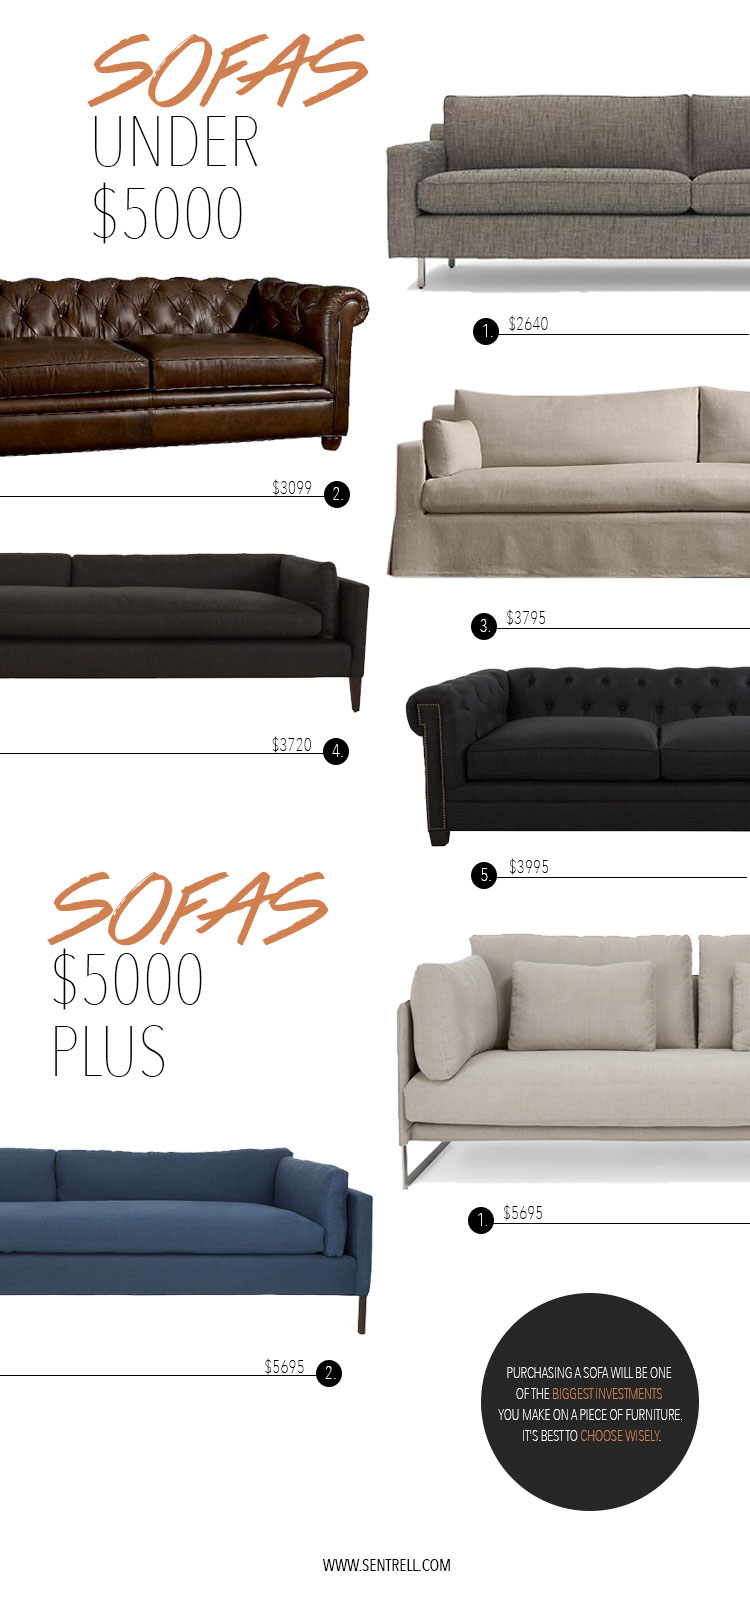 sofas under $5000 and $5000 plus